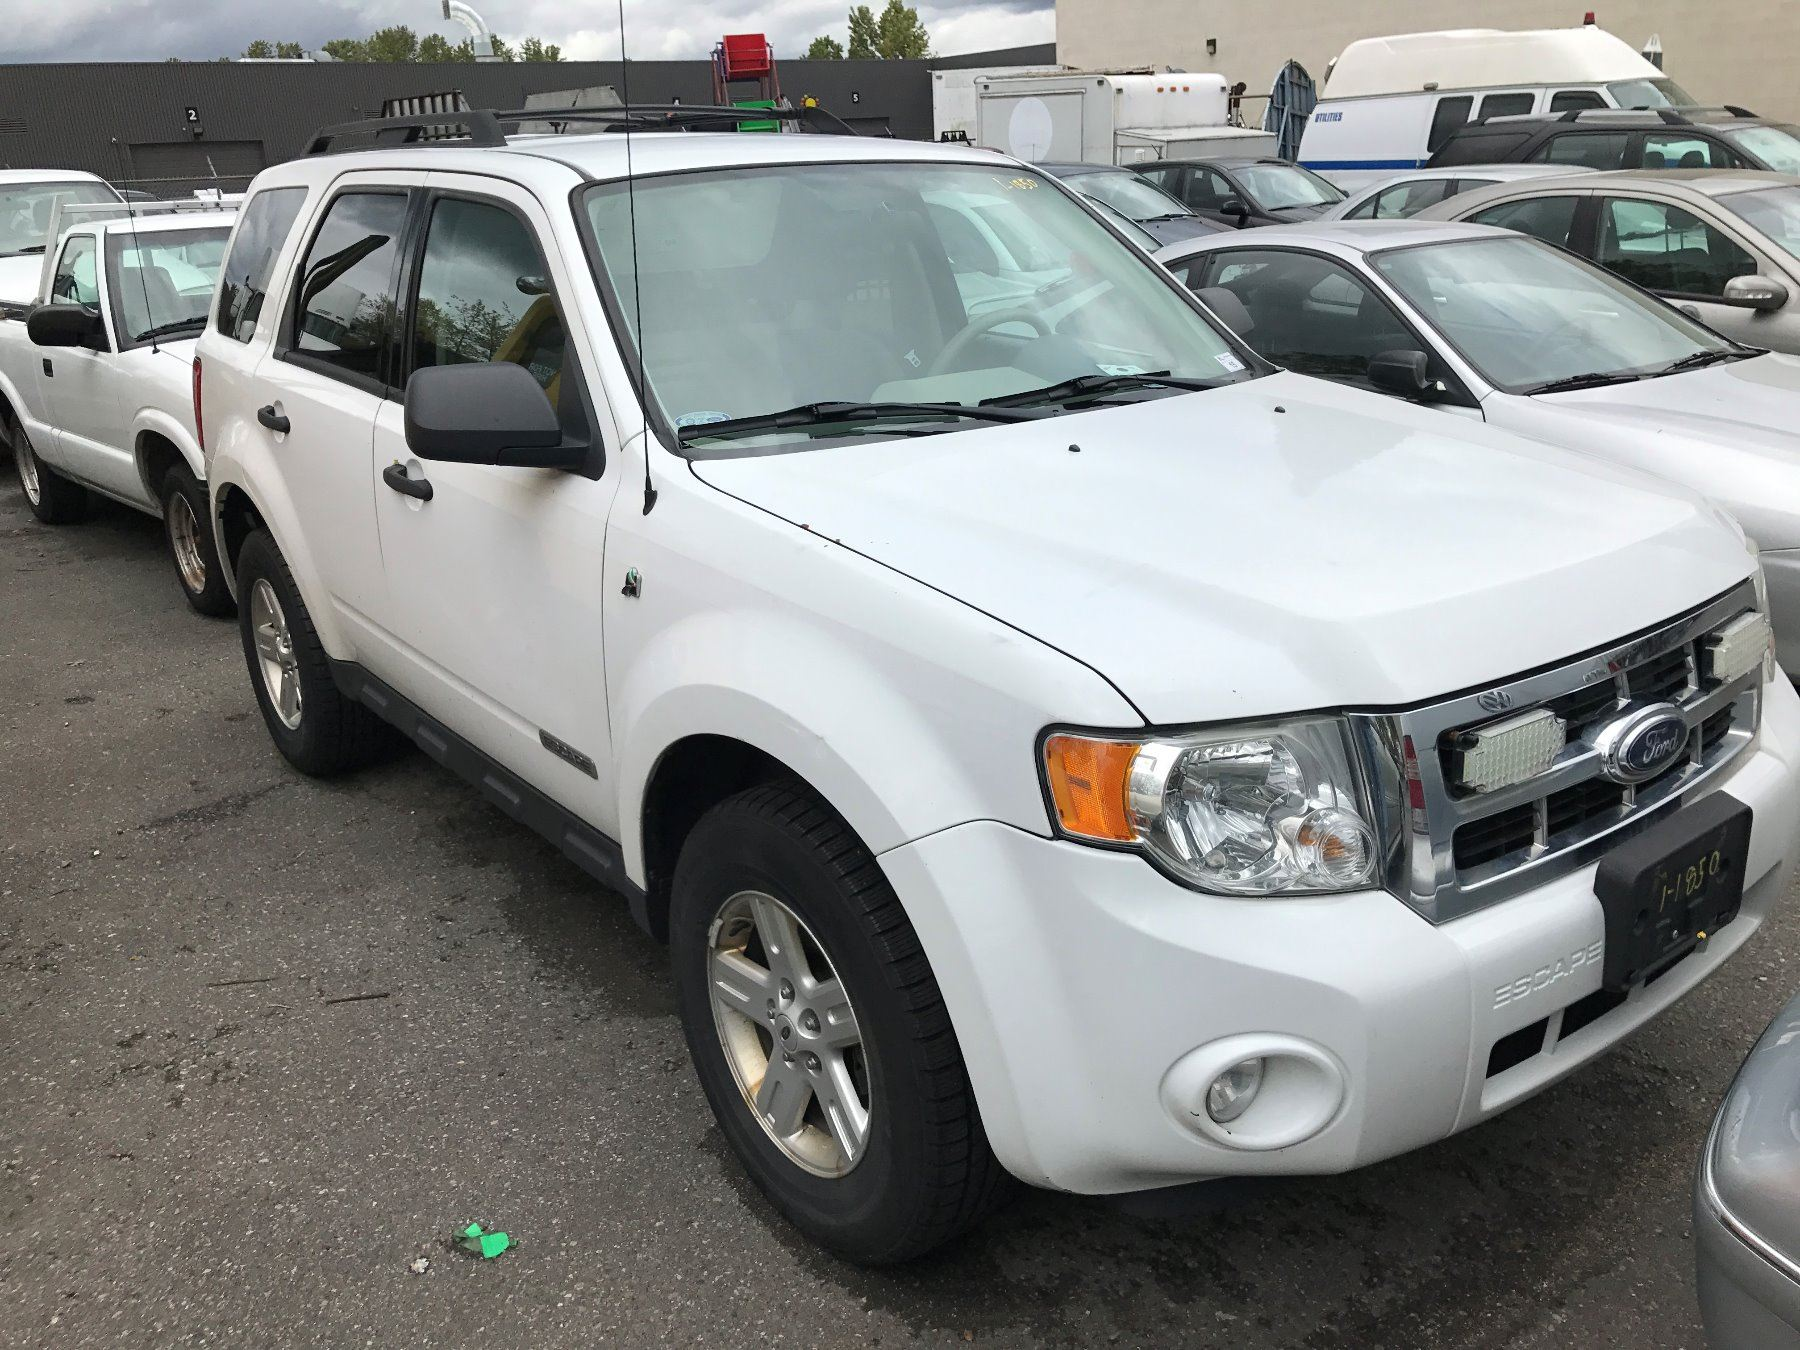 2008 ford escape hybrid 4 door suv white vin 1fmcu59h28kd98024 able auctions. Black Bedroom Furniture Sets. Home Design Ideas